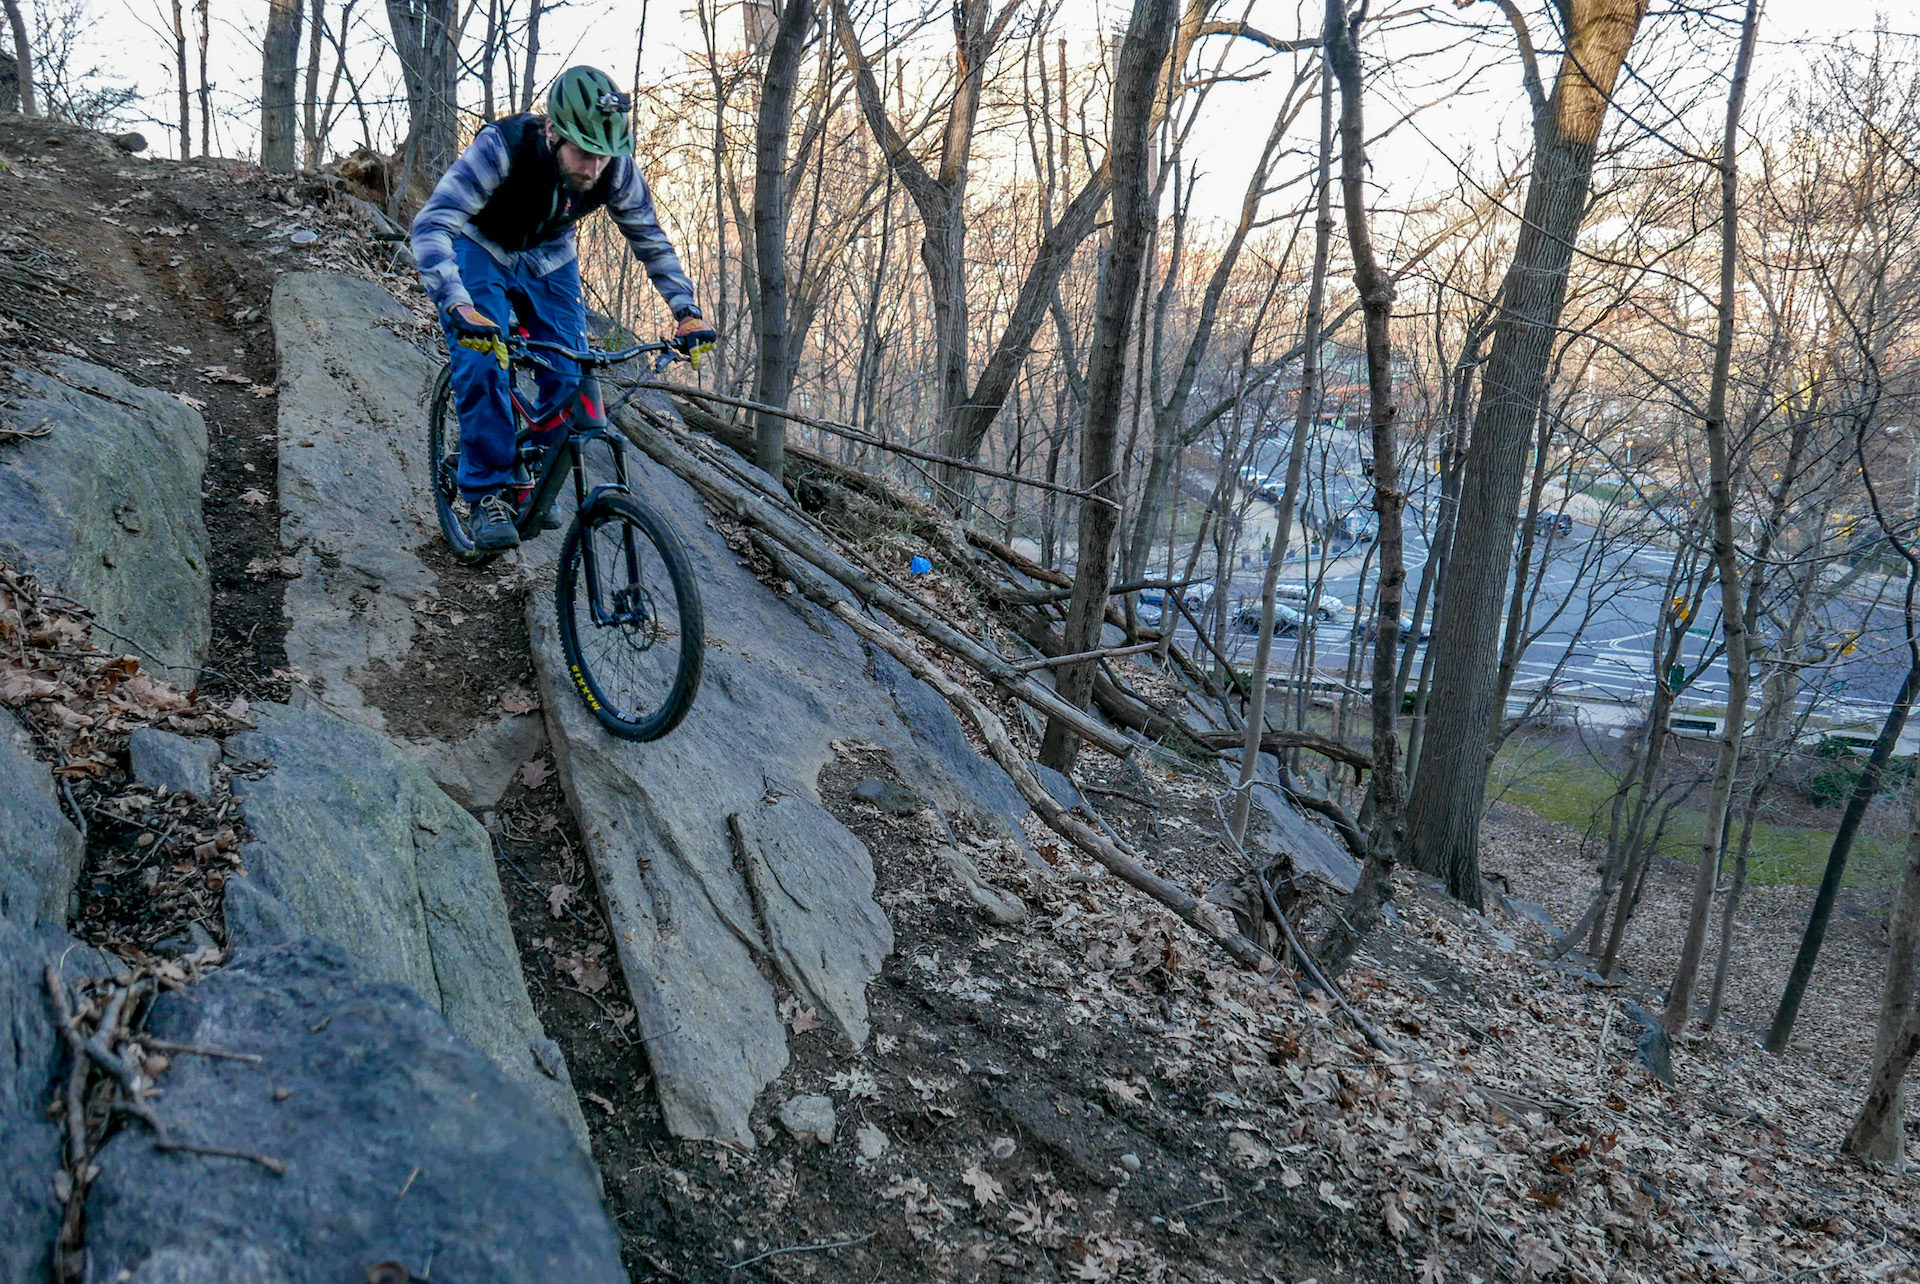 Dropping in on a large boulder.